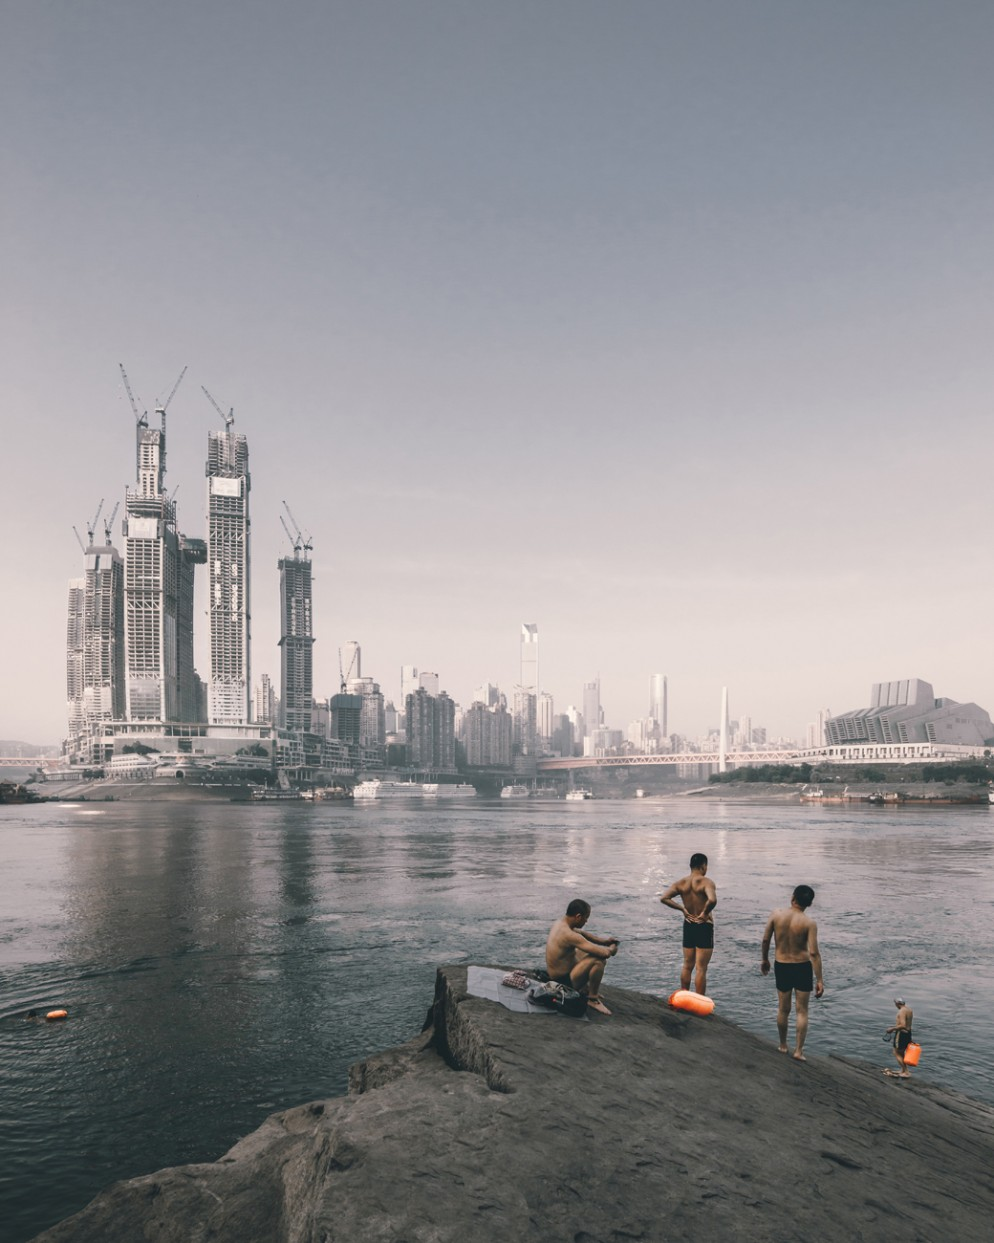 Project: Swimmers on the riverside opposite the construction of Raffles City Chongqing, China by Safdie ArchitectsPhotographer: Zhu Wenqiao